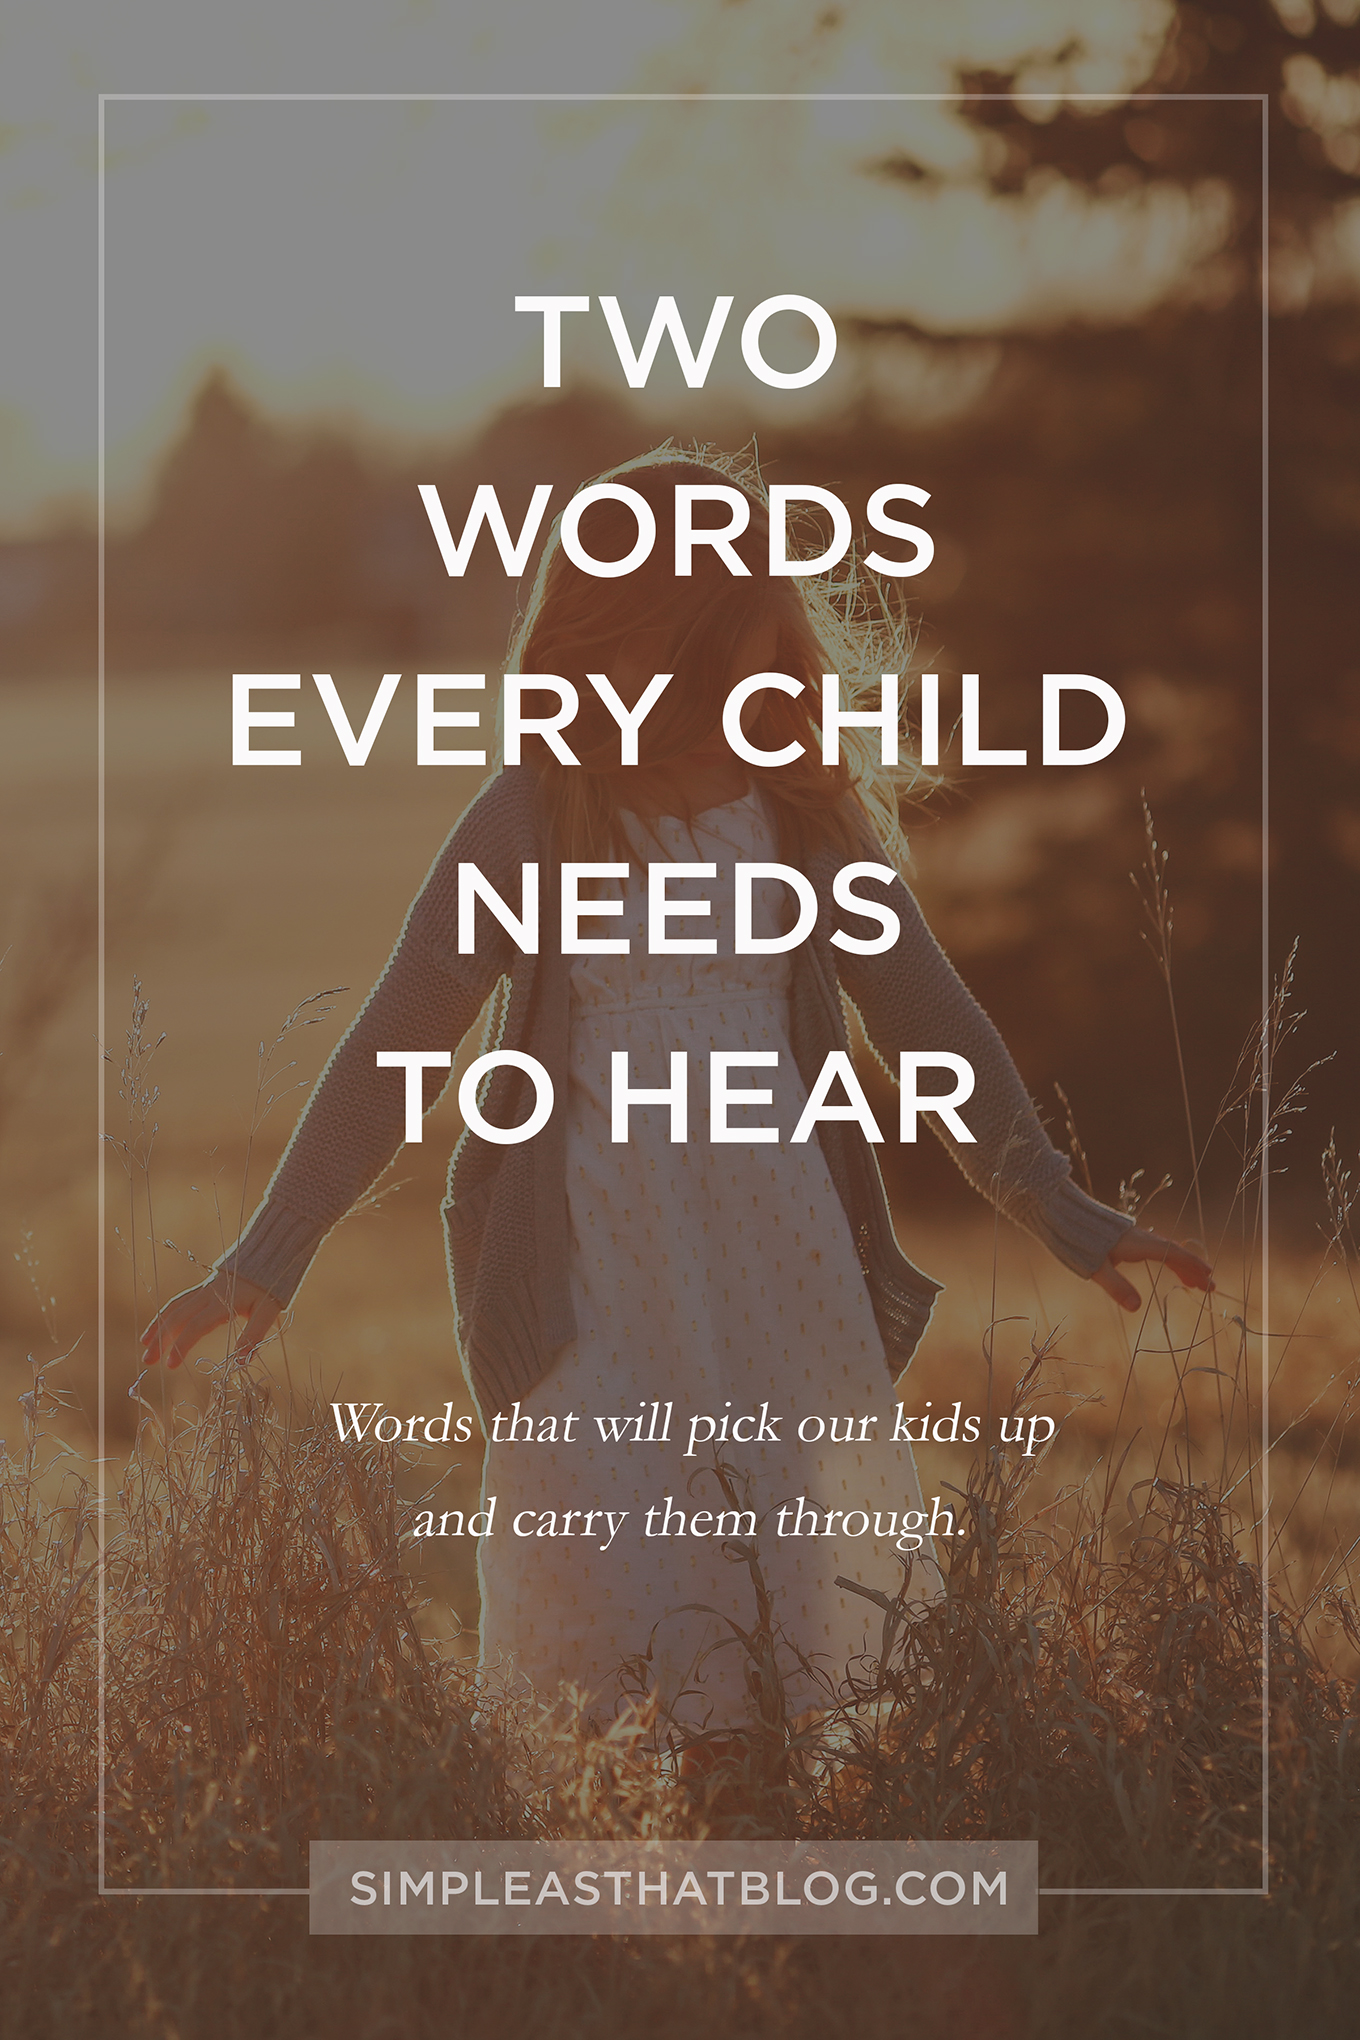 Two simple words every child needs to hear. A simple parenting approach to encourage our children for years to come.